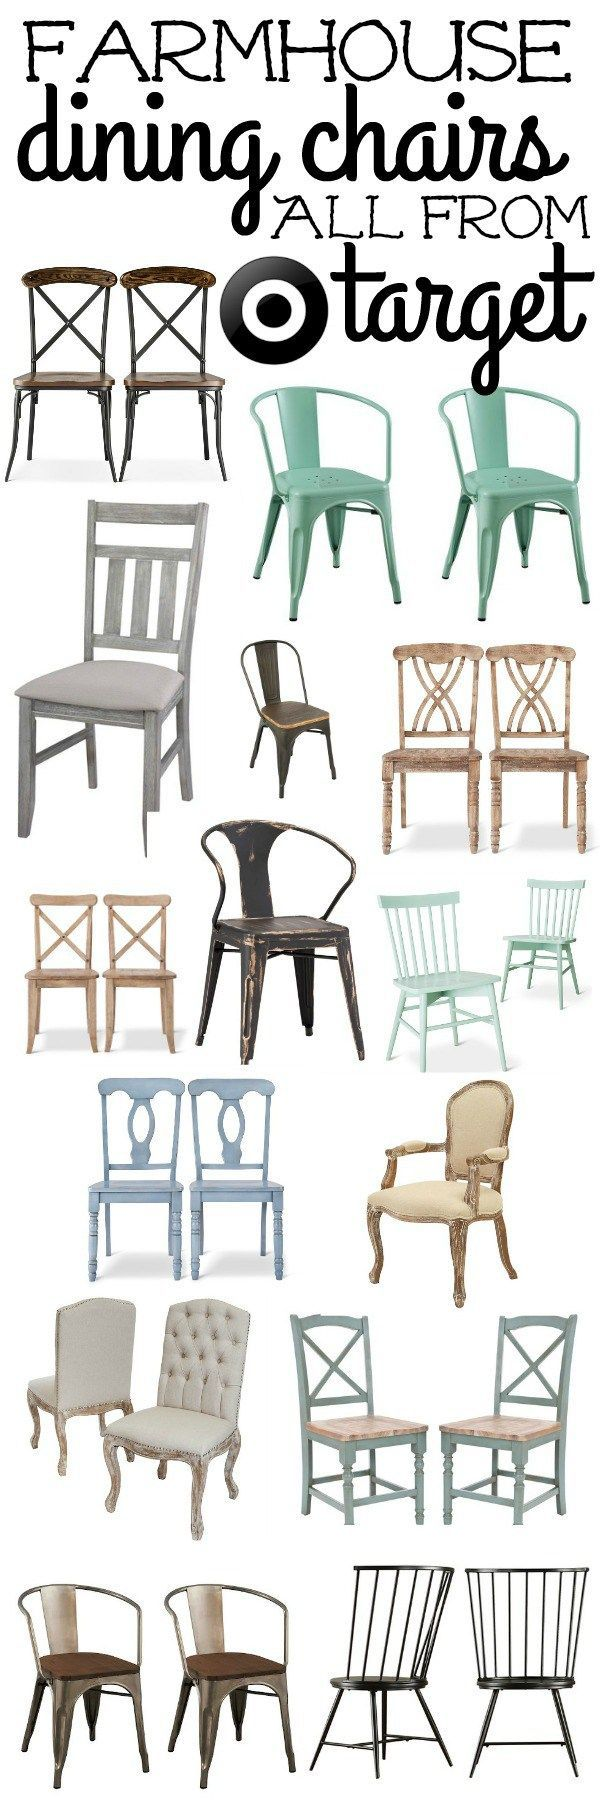 on pinterest metal chairs farmhouse chairs and dining room lighting